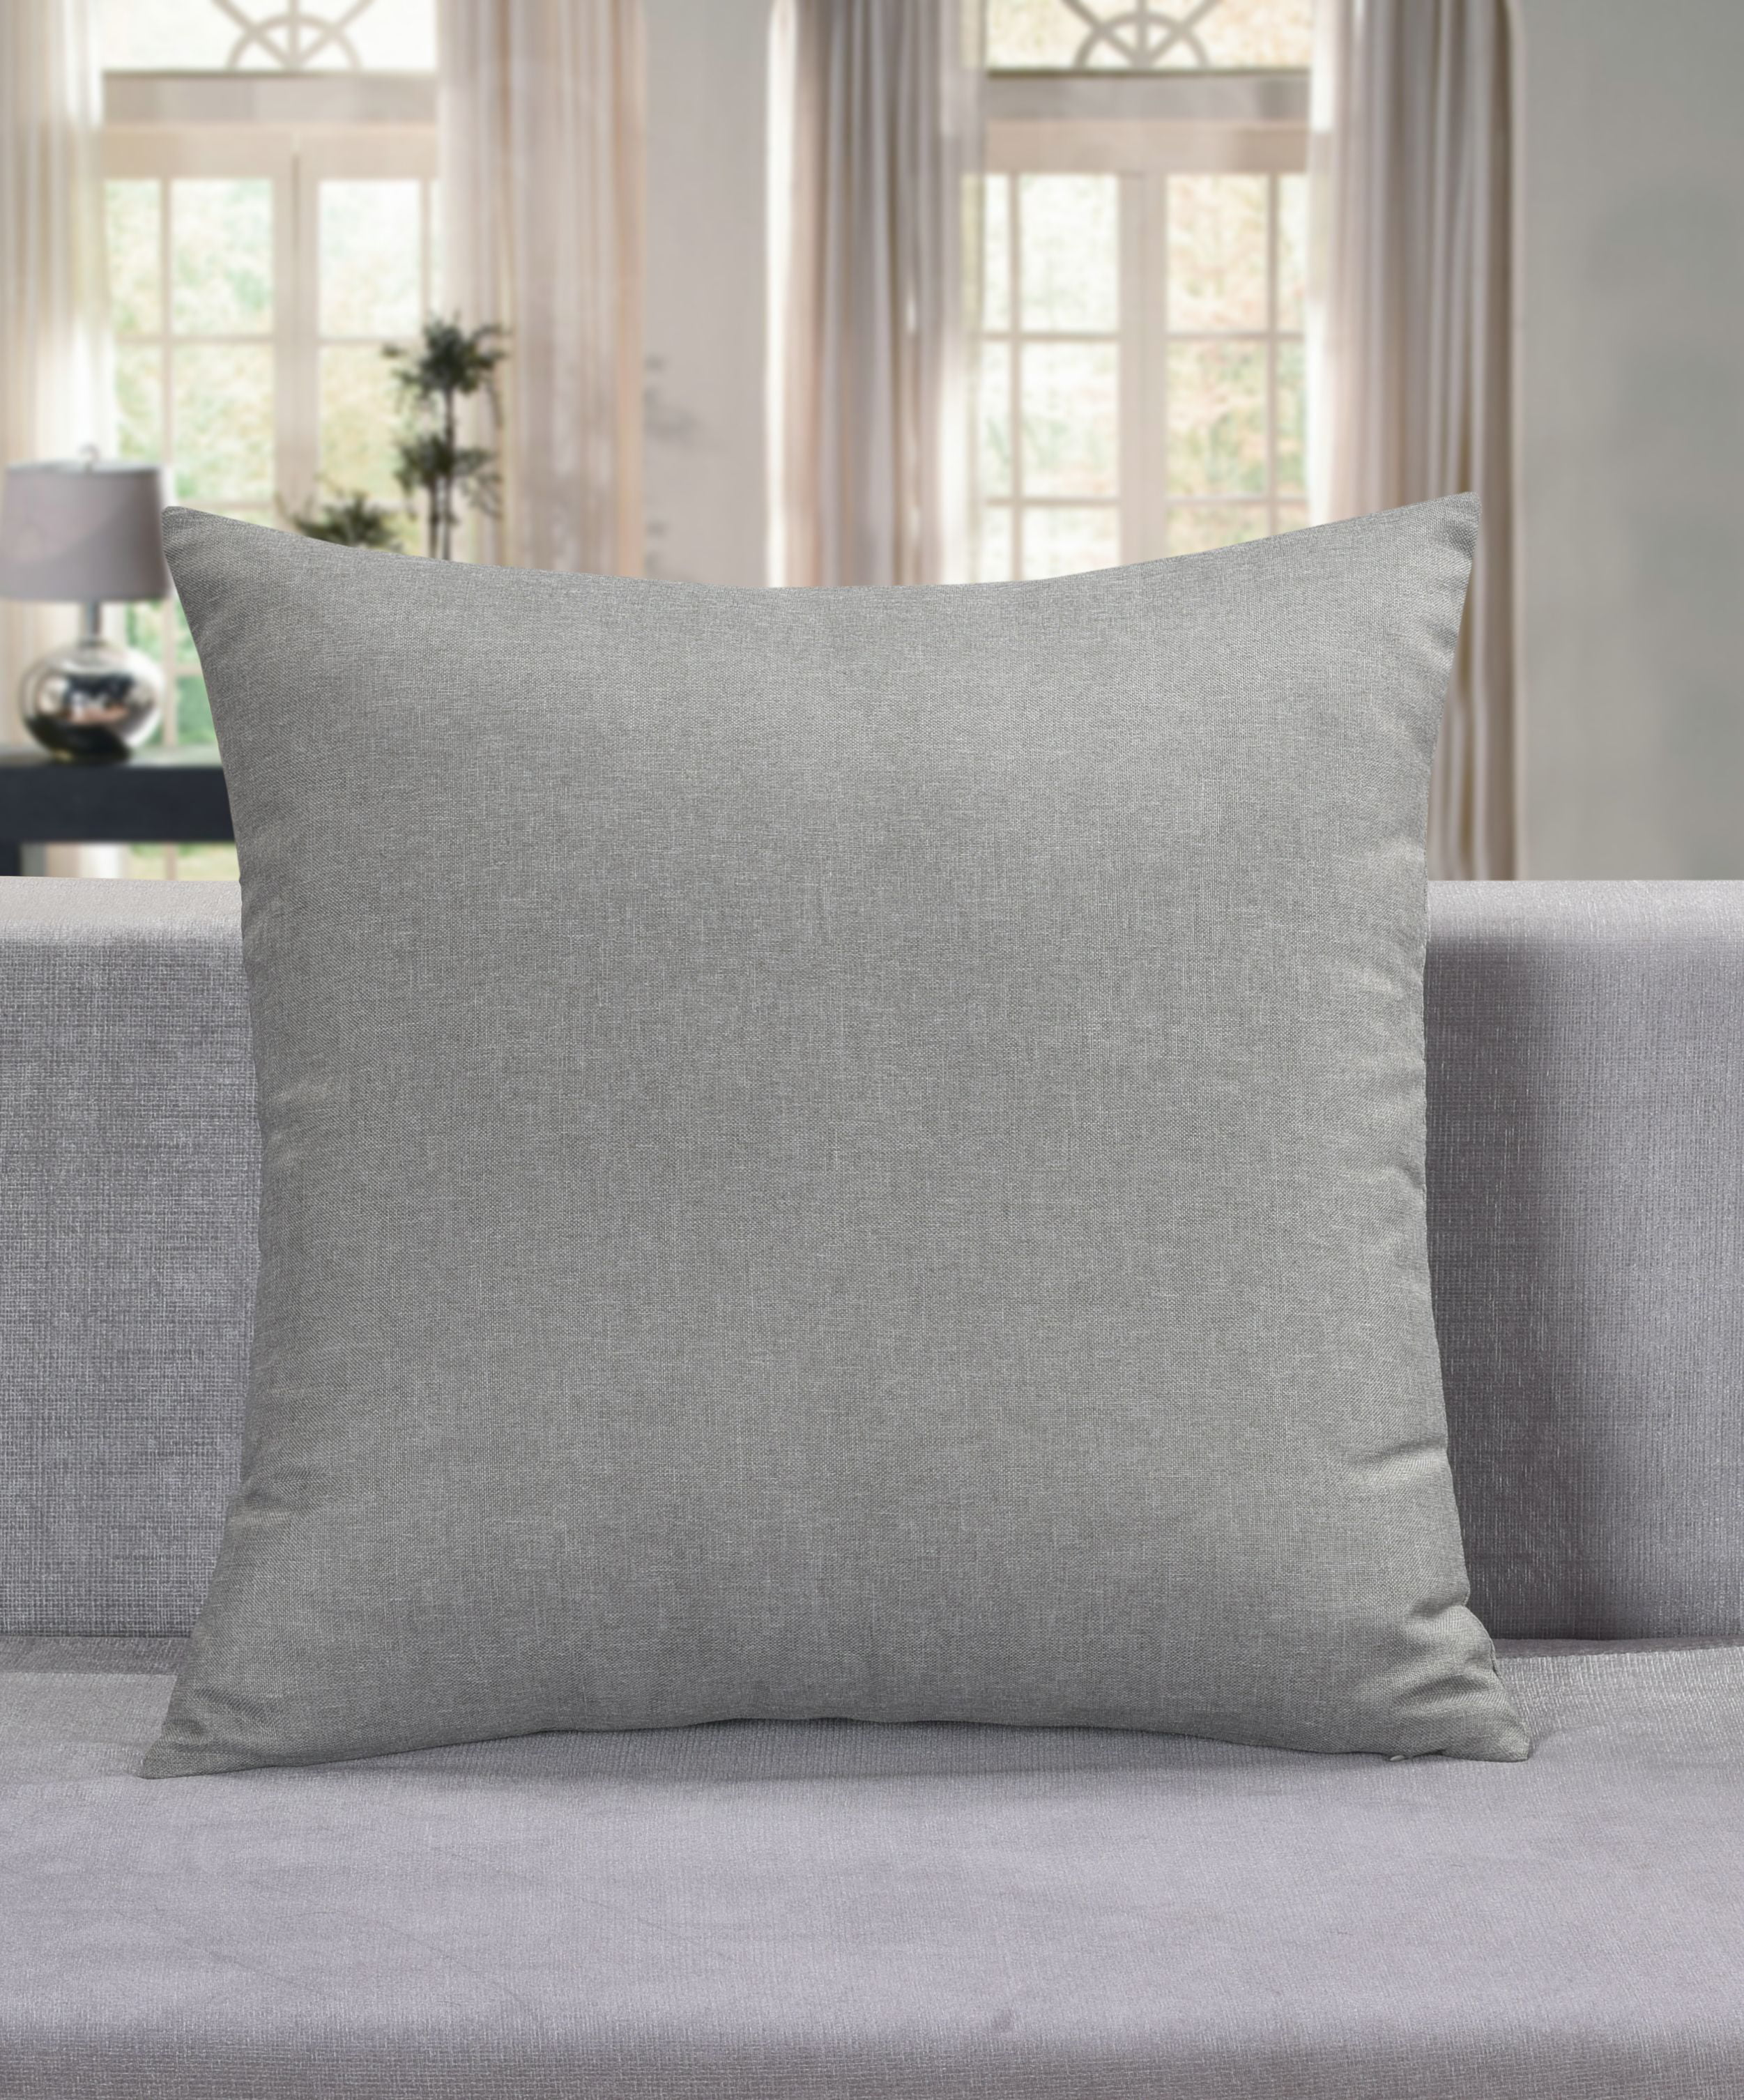 24x24 Aiking Home Collection Aiking Home Breathable Solid Faux Linen Euro Sham Pillow Cover For Sofa Couch Or Bedroom 24x24 Lagoon Couch Or Bedroom Throw Pillow Covers